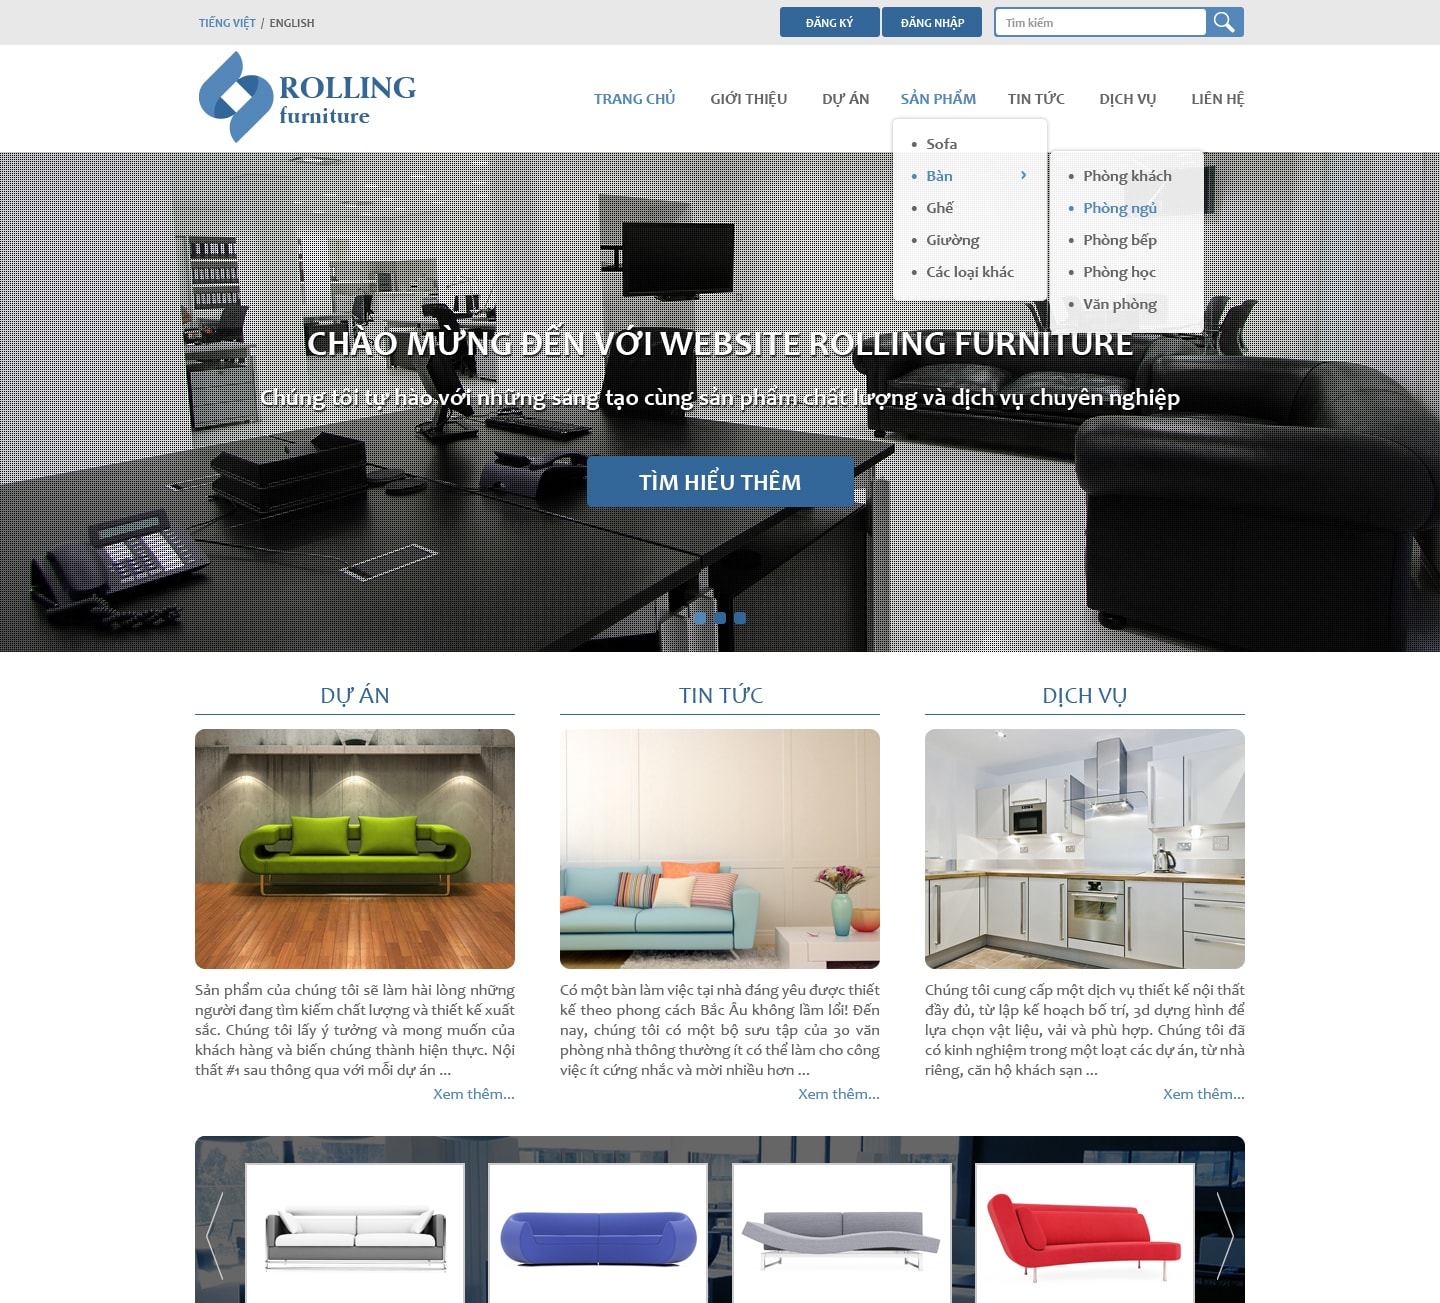 vnvn-web-design-kwicks-vertical-02